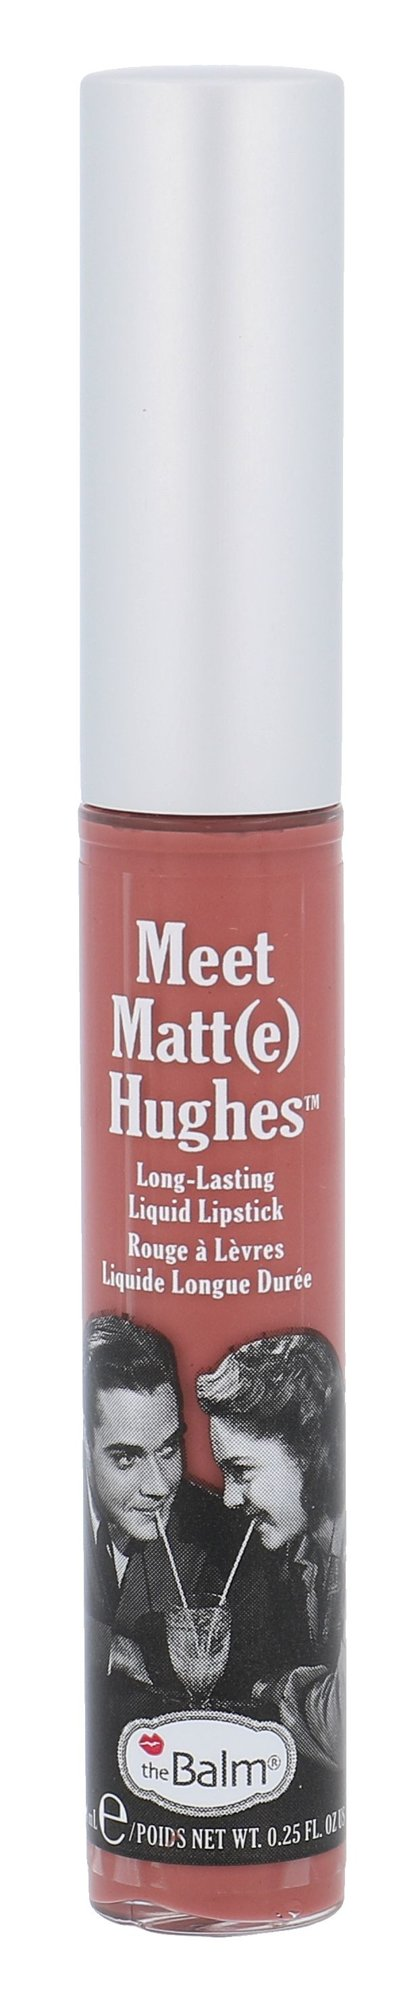 TheBalm Meet Matt(e) Hughes Cosmetic 7,4ml Committed